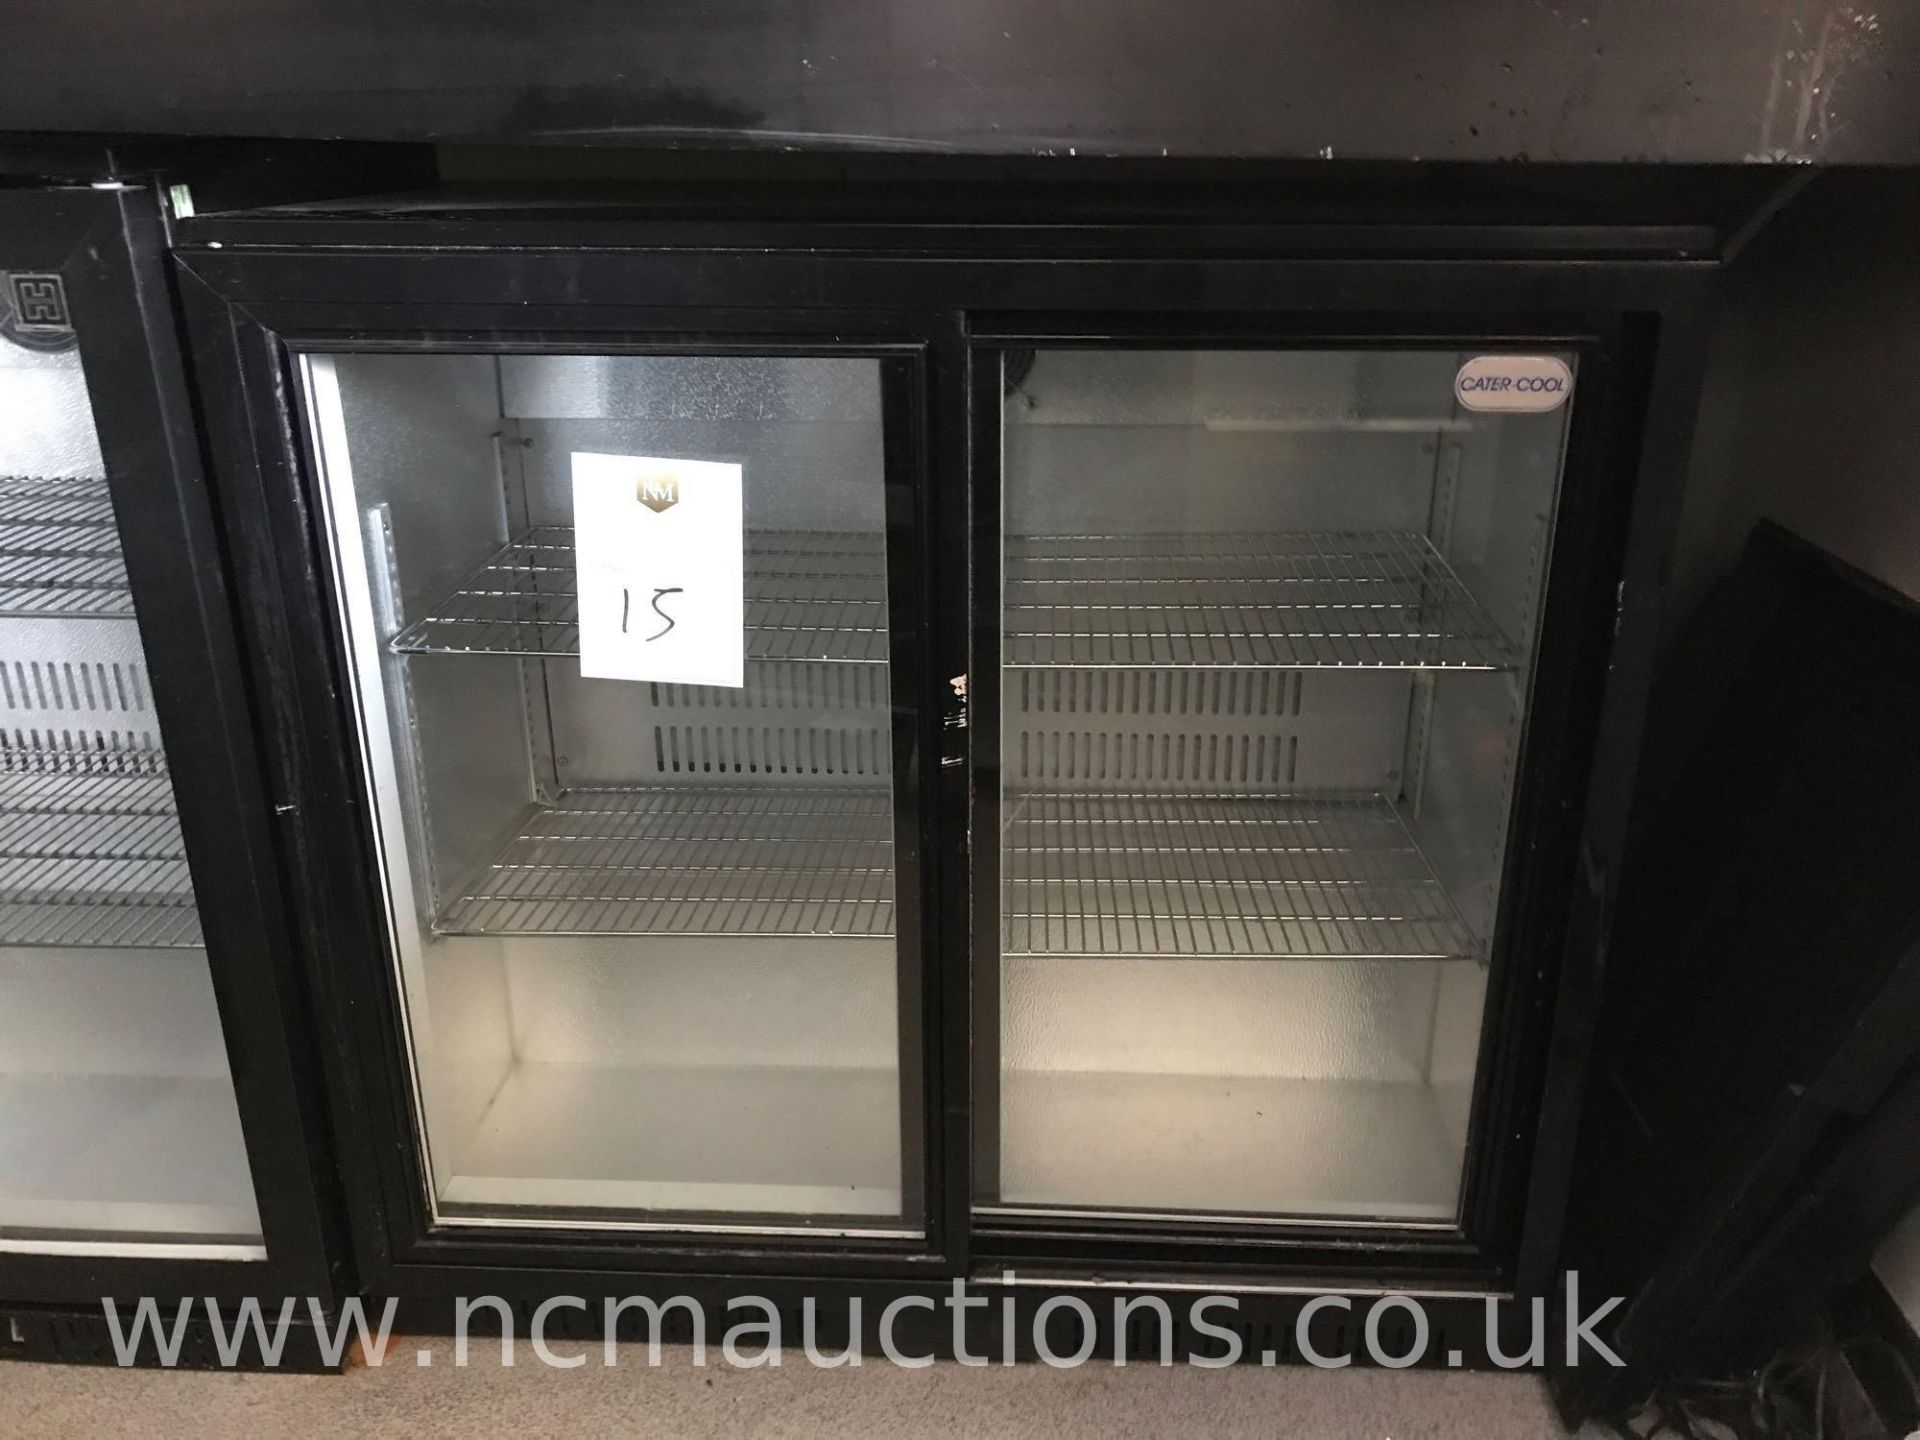 Lot 15 - Cater-cool double display fridge